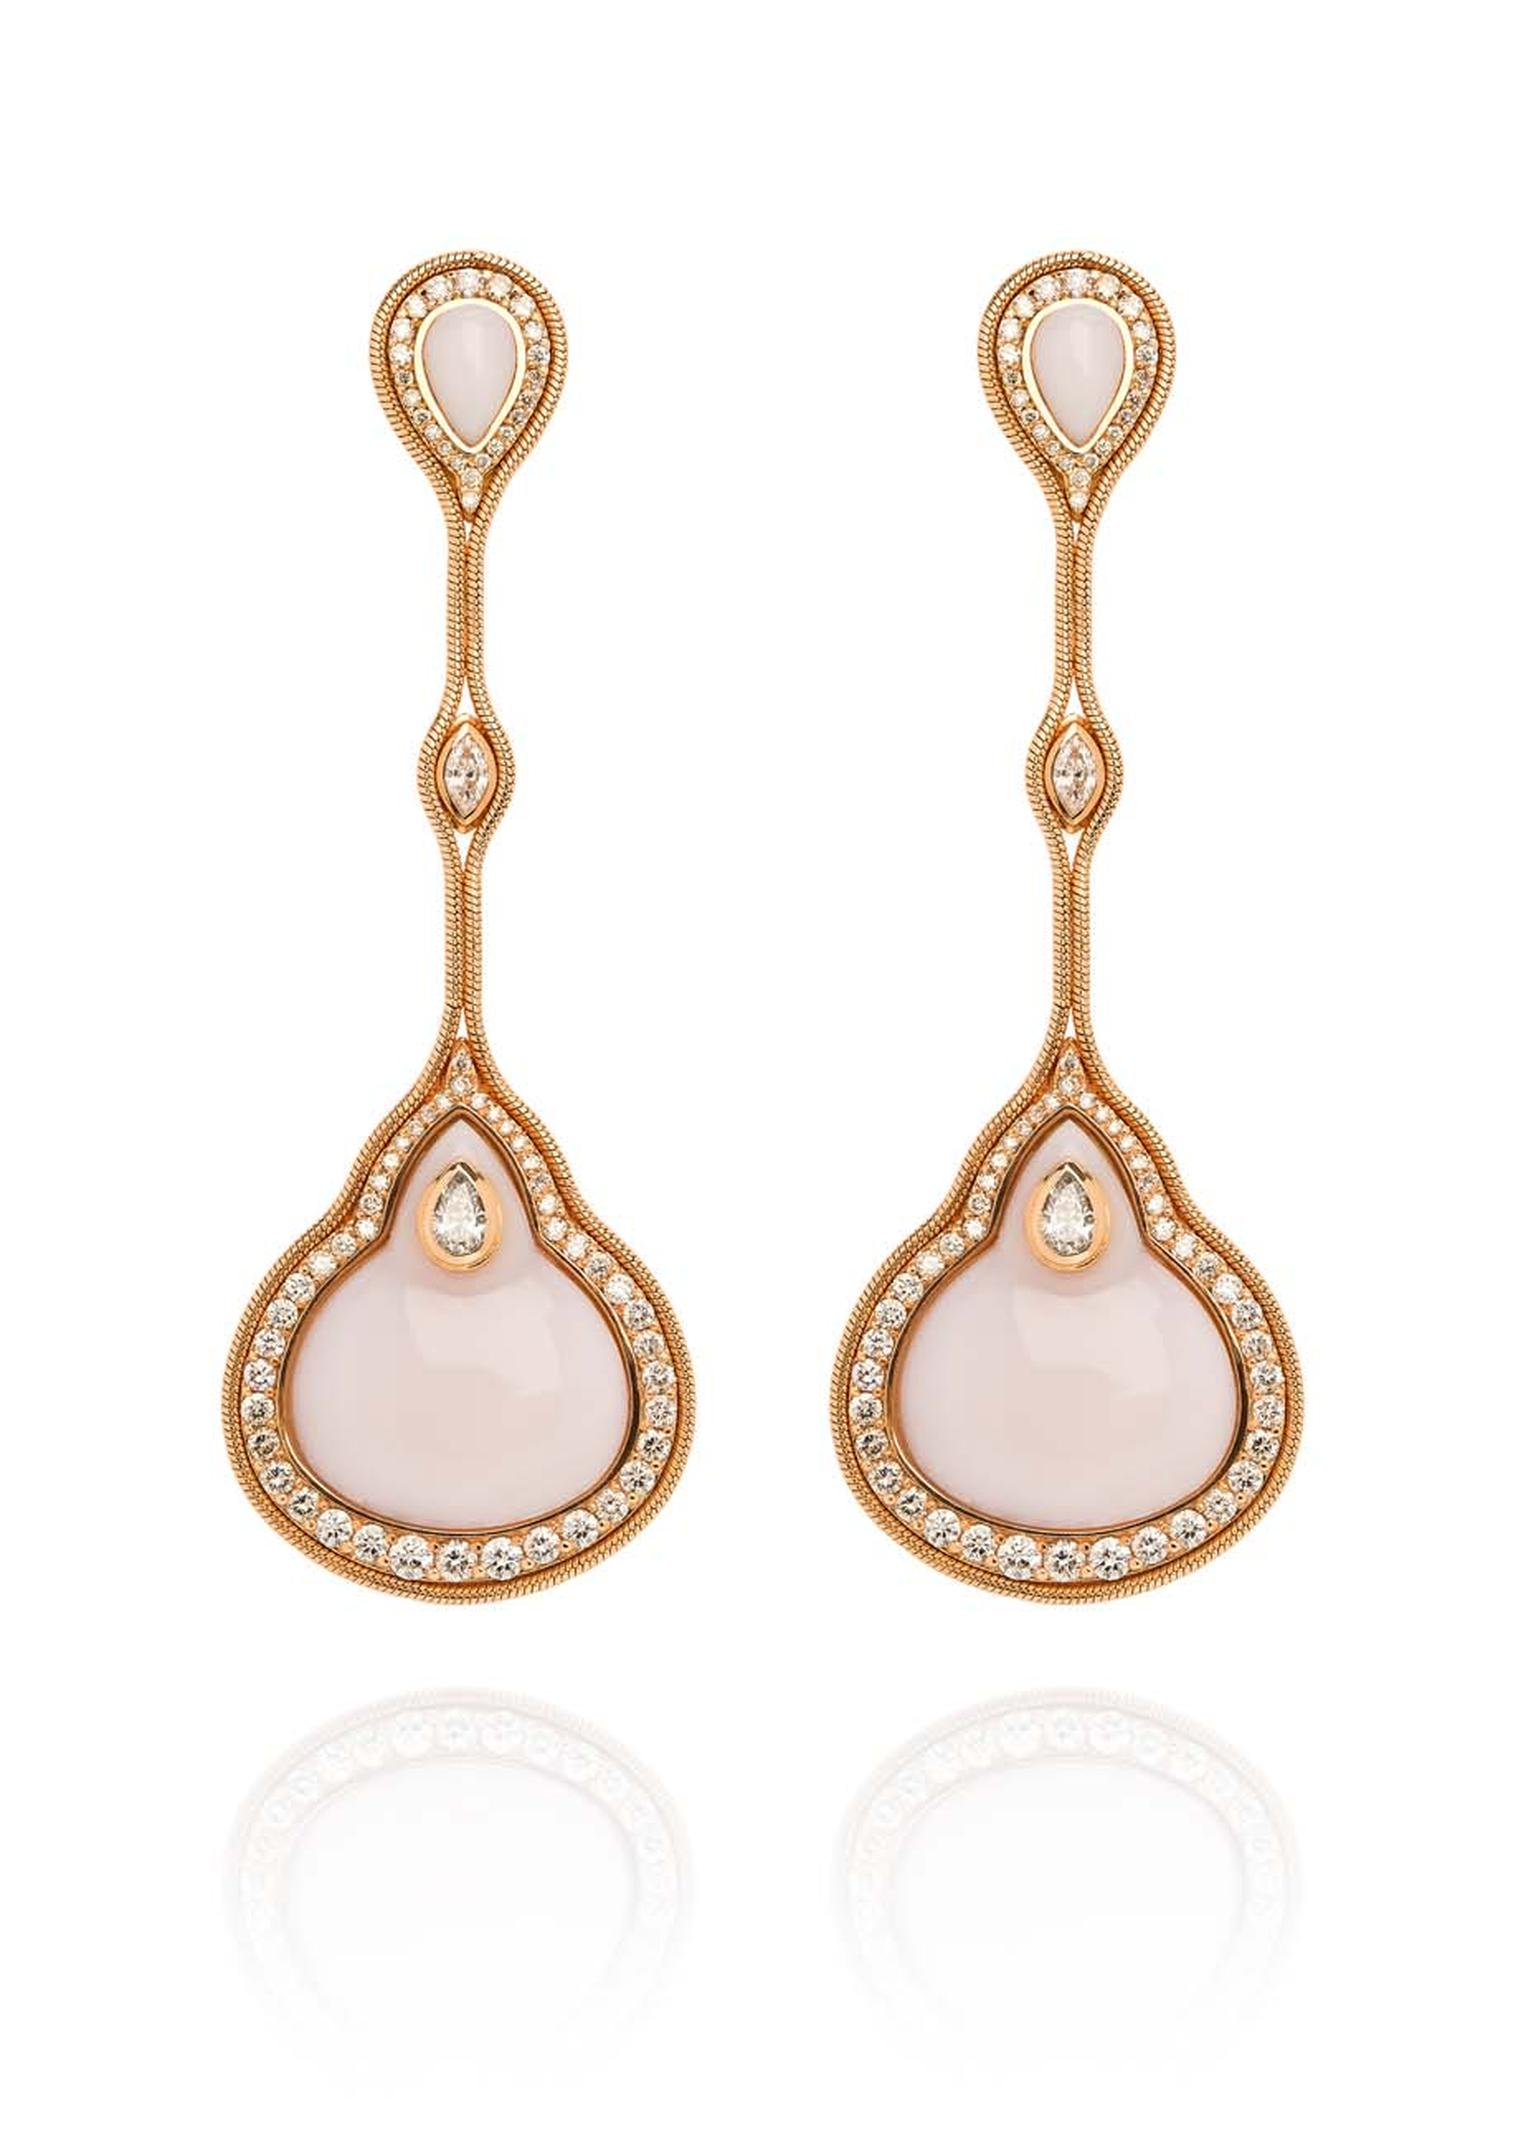 Fernando Jorge Fluid earrings with diamonds and pink stones, available at Latest Revival